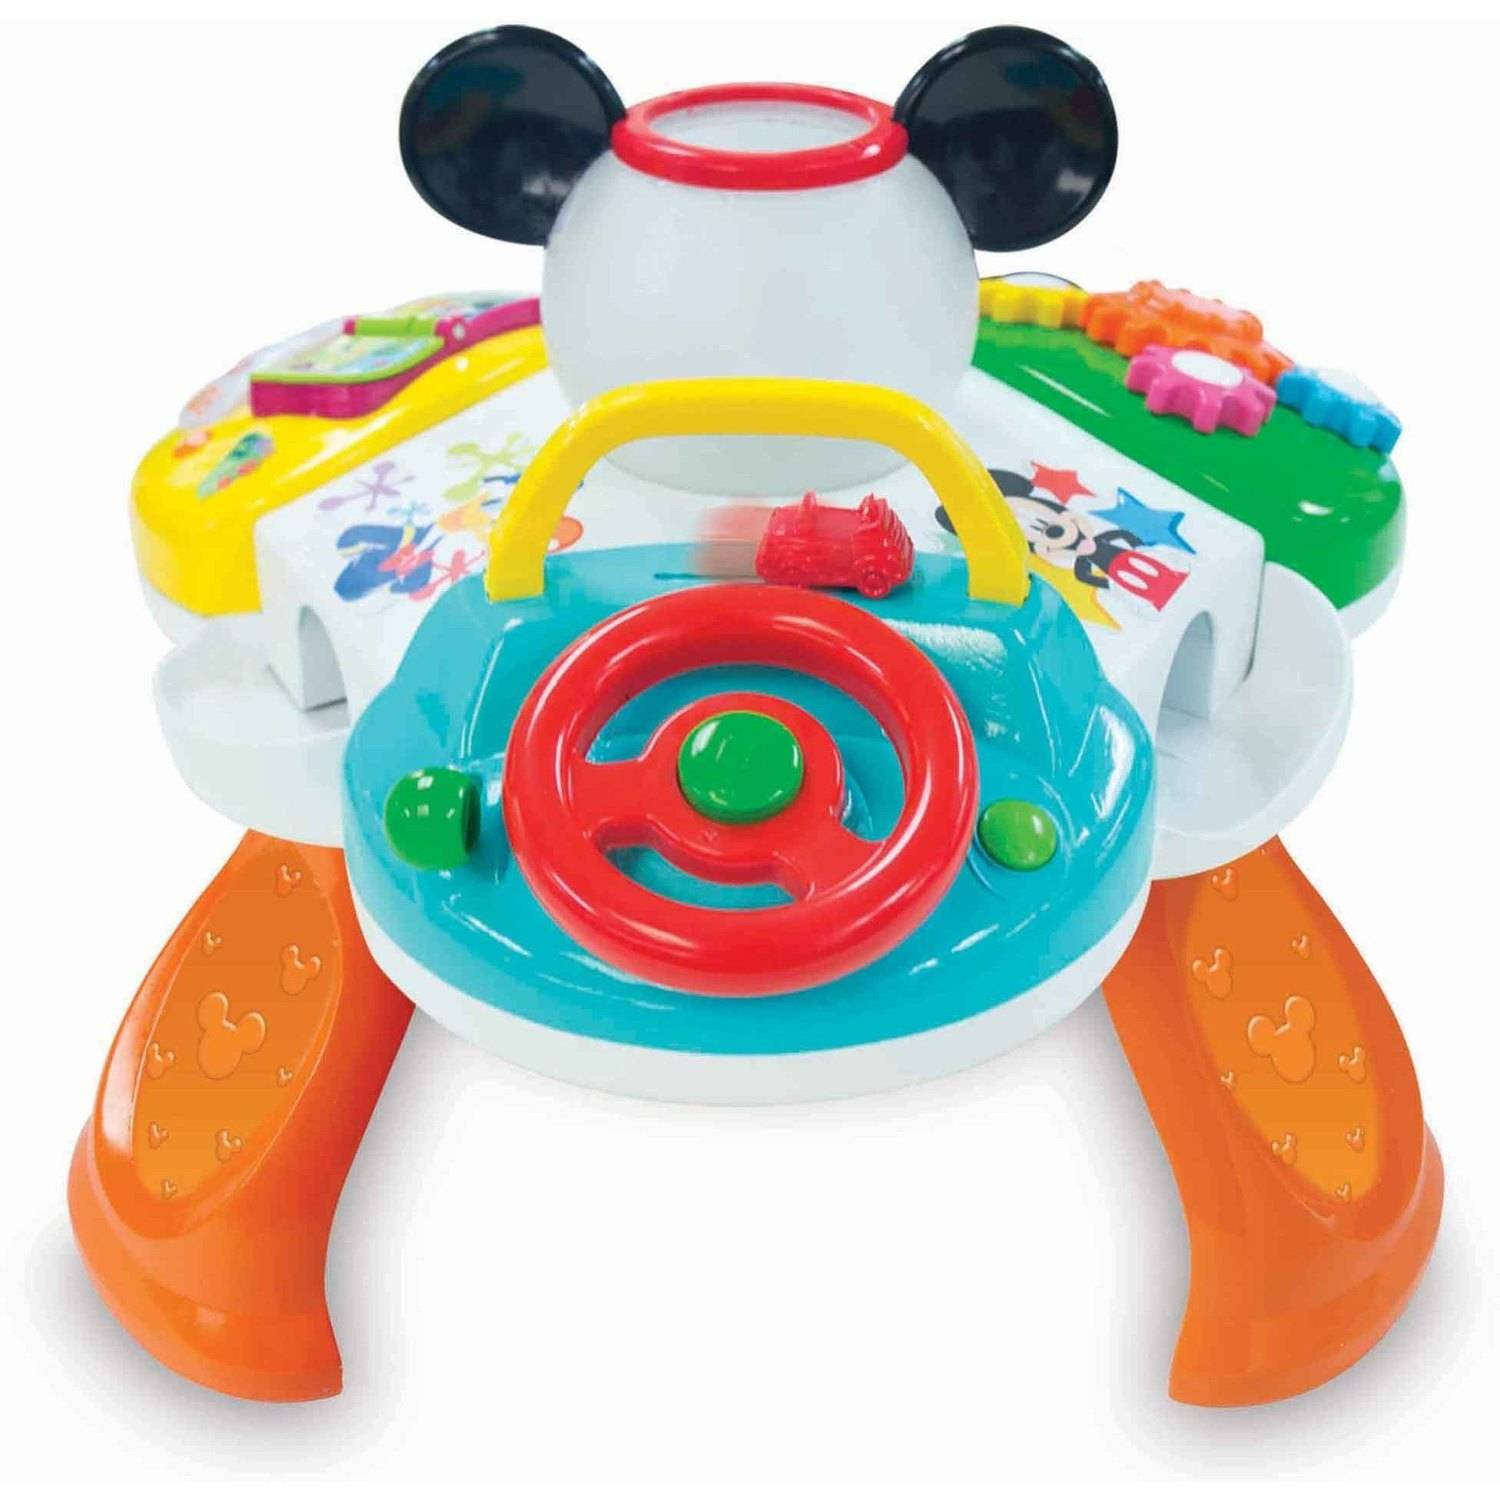 Kiddieland Disney Mickey Mouse and Friends Delight and Discover Activity Table by Kiddieland